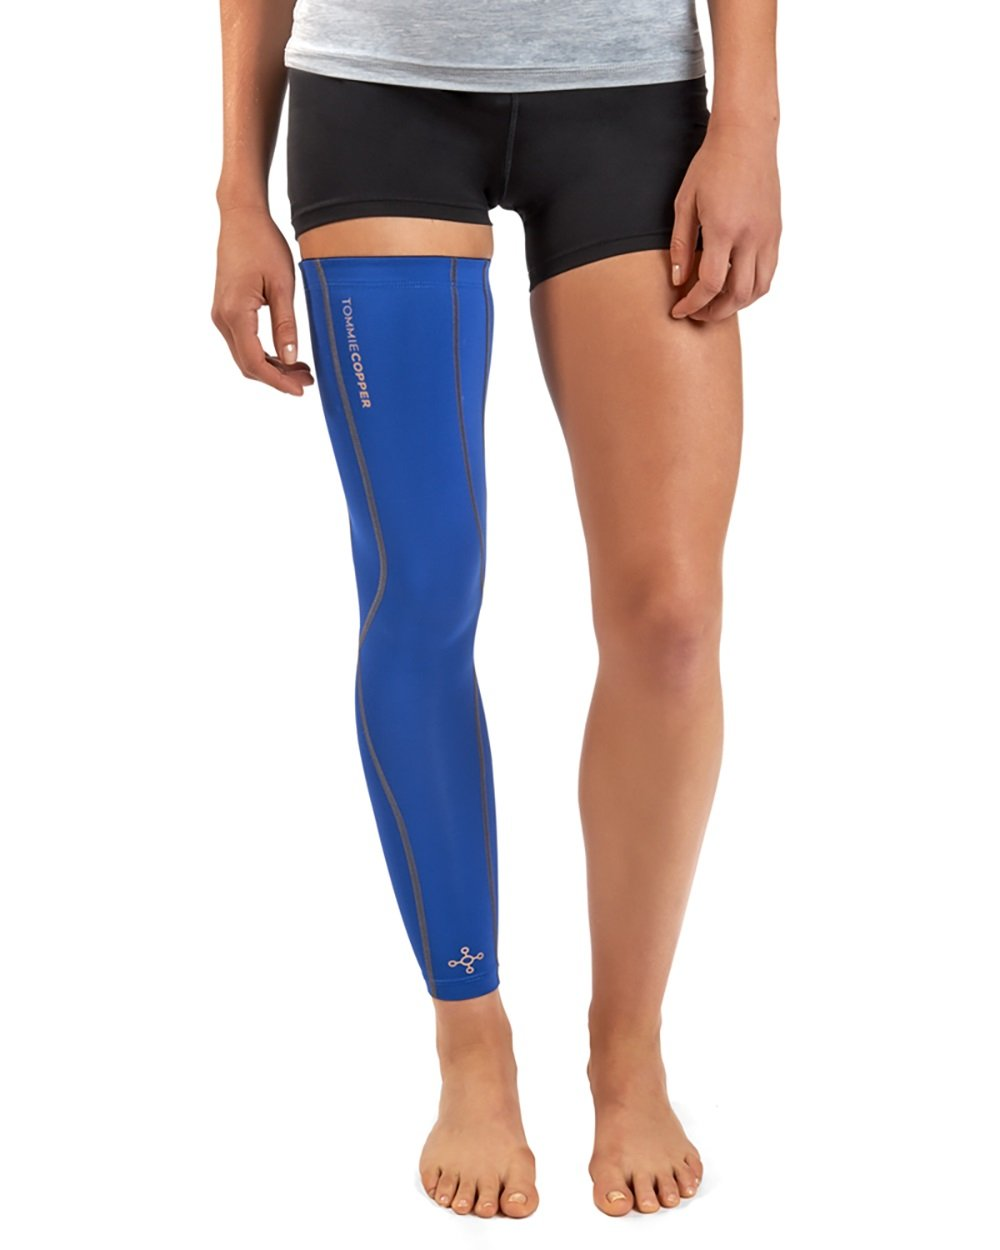 Tommie Copper Womens Performance Full Leg Sleeve 2.0 0452UR-0101-03-WBAG-P